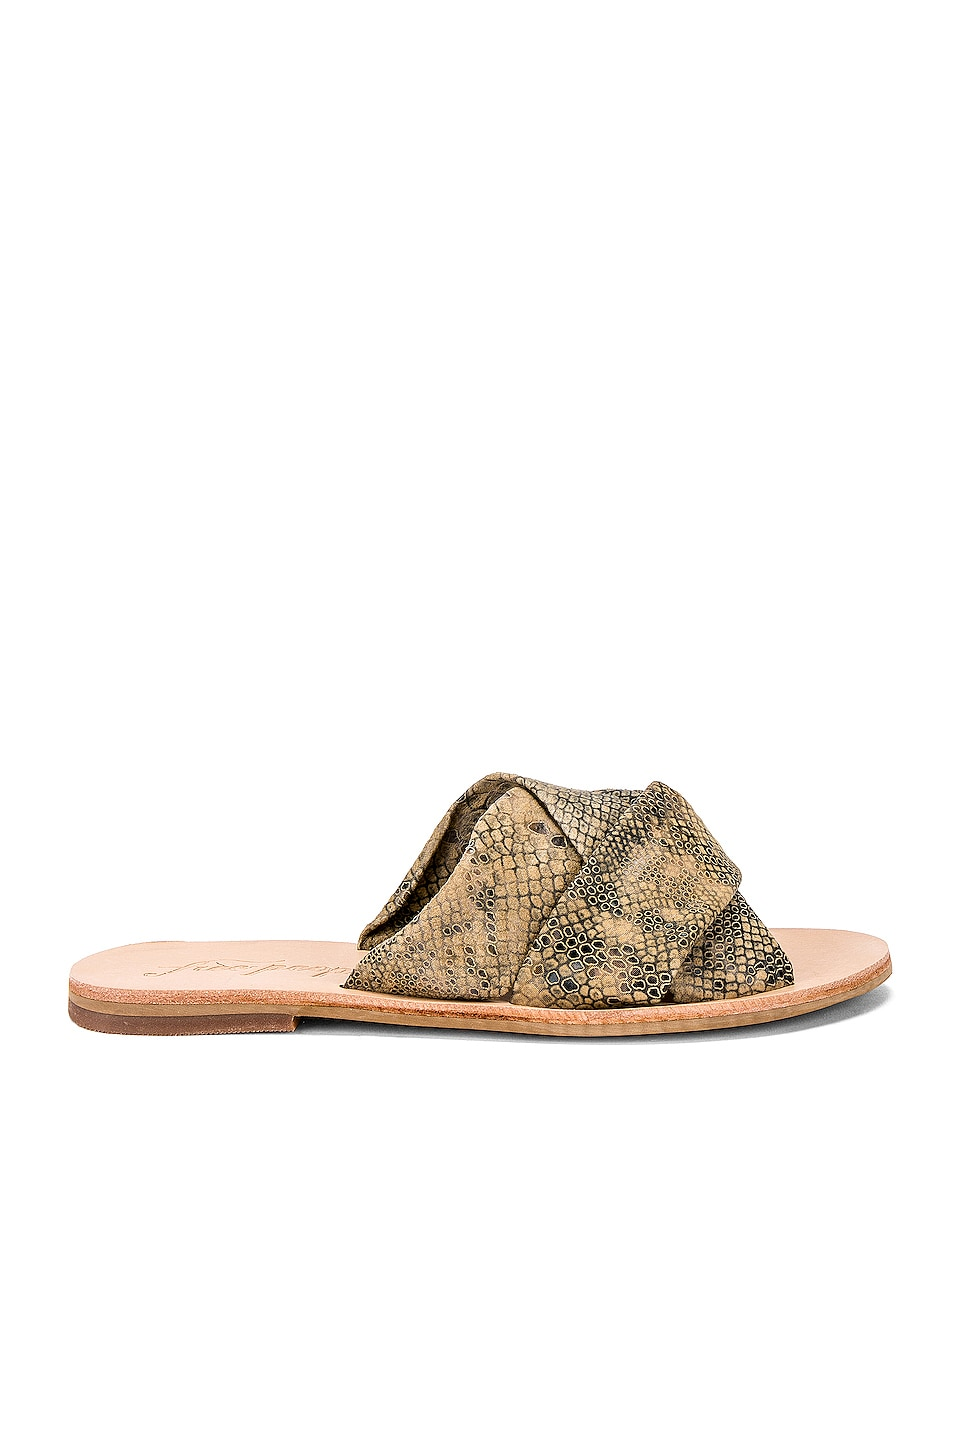 Free People Rio Vista Slide in Beige